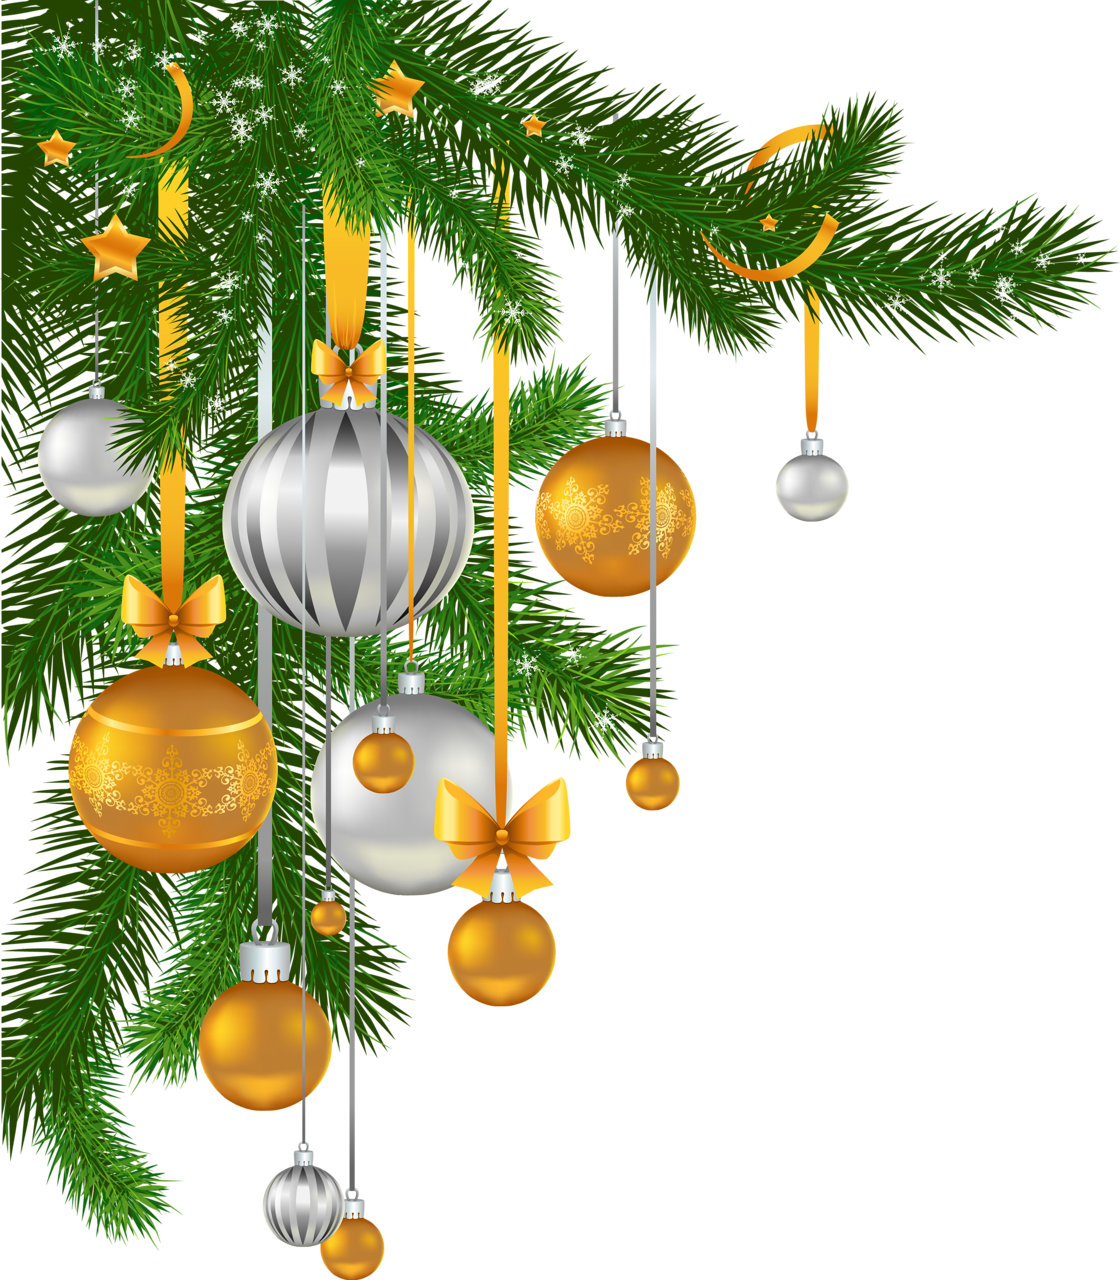 Christmas tree branch clipart svg freeuse Christmas Balls Pine Branch Clipart svg freeuse